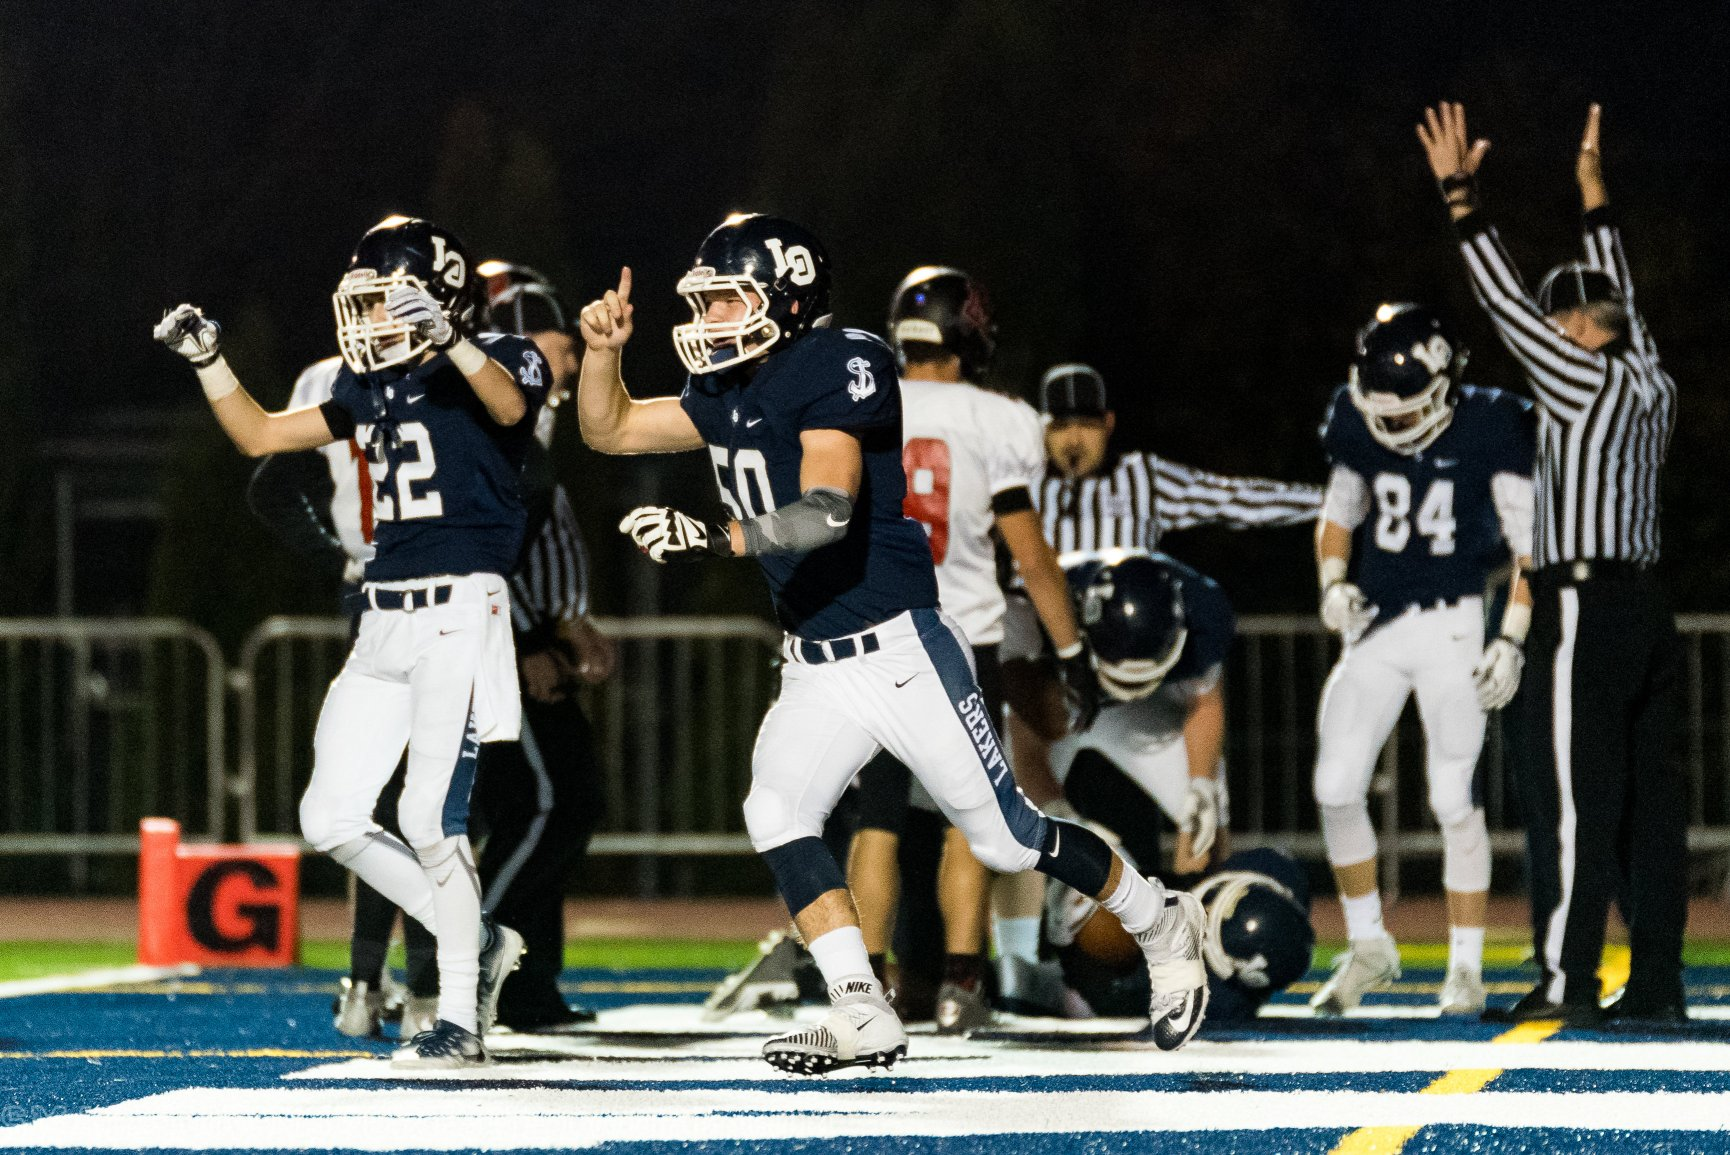 Lake Oswego Defeats North Medford Advances in 6A State Playoffs